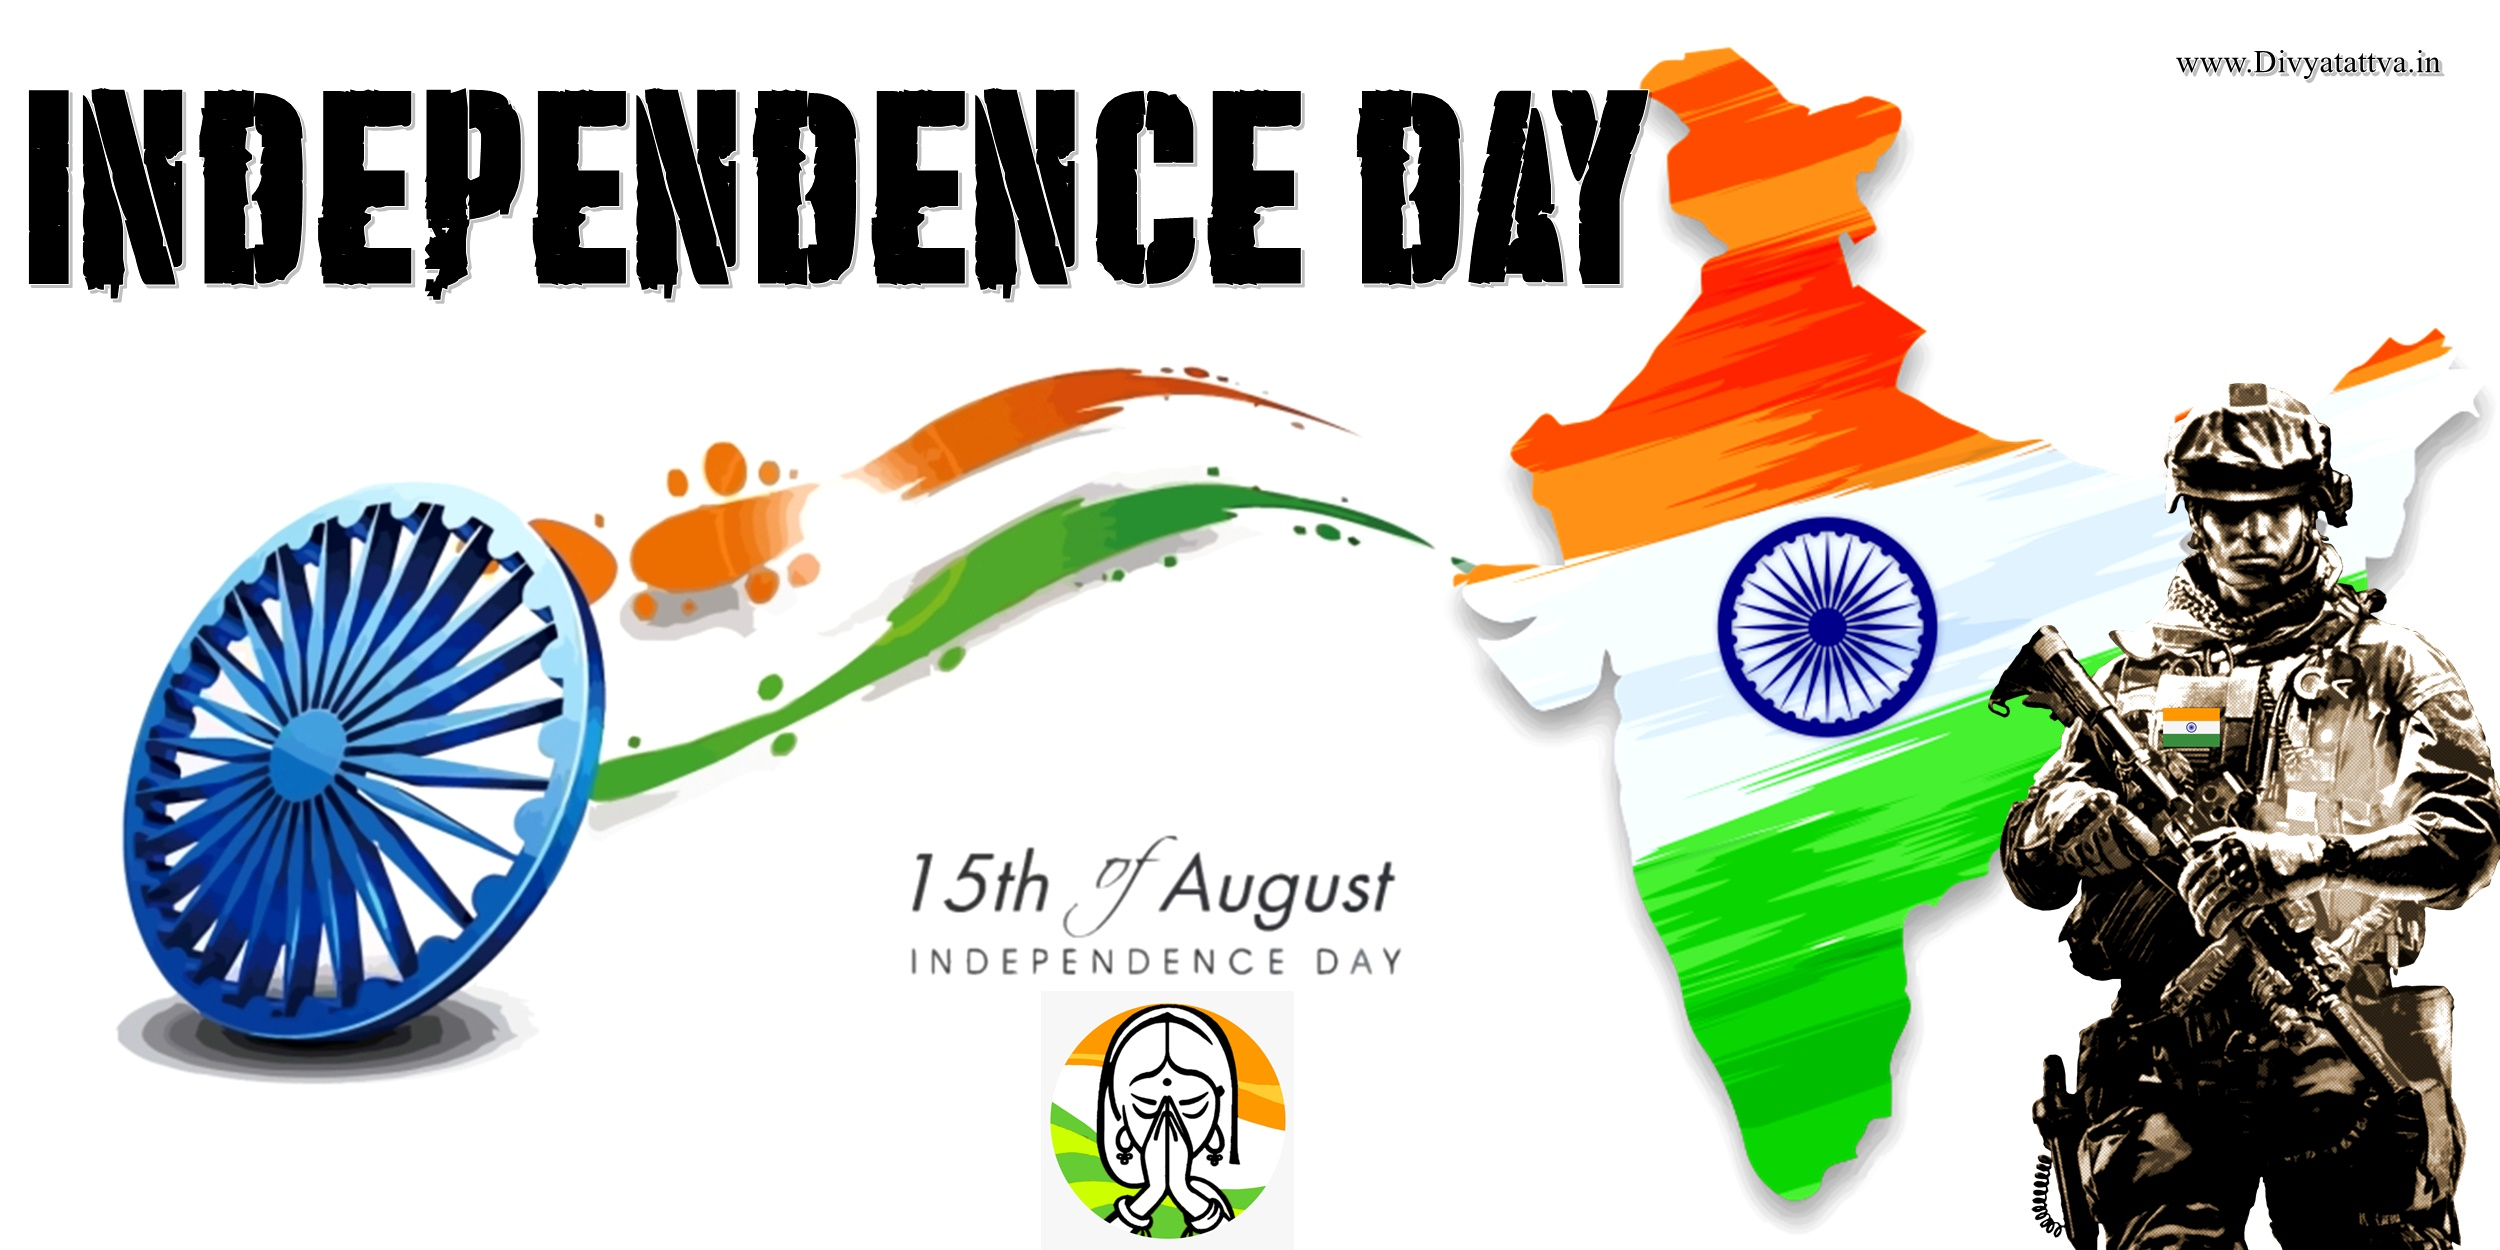 Happy Independence Day Pictures, 15th Aug India Greetings Messages, Freedom Background Images & Wallpapers, Hindustan  Photos Pics, Slogans, Quotes,